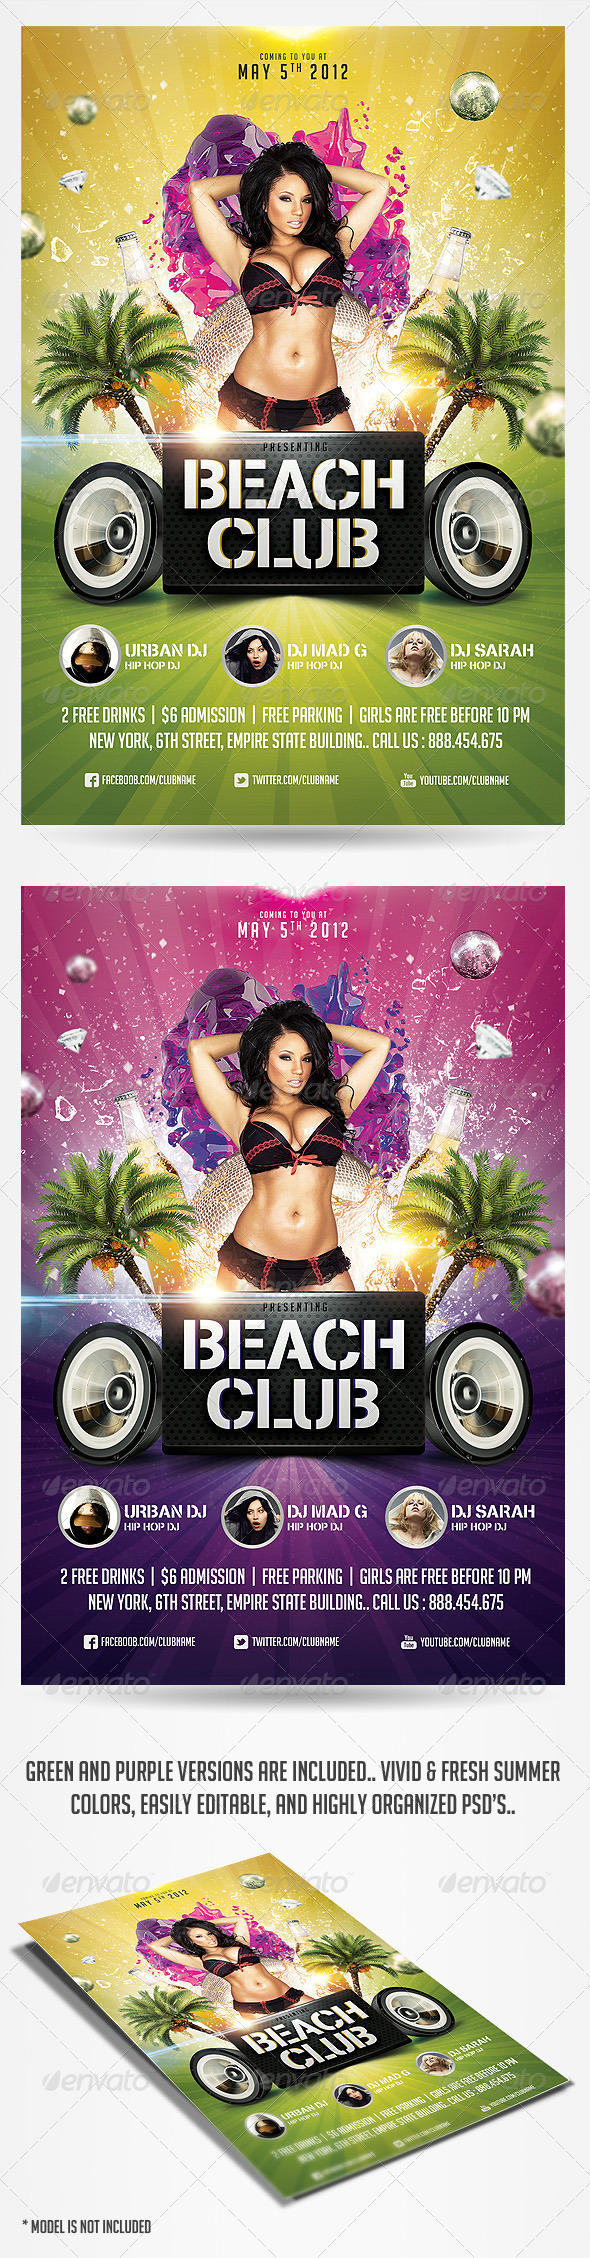 Summer Beach Club Flyer Template - Clubs & Parties Events